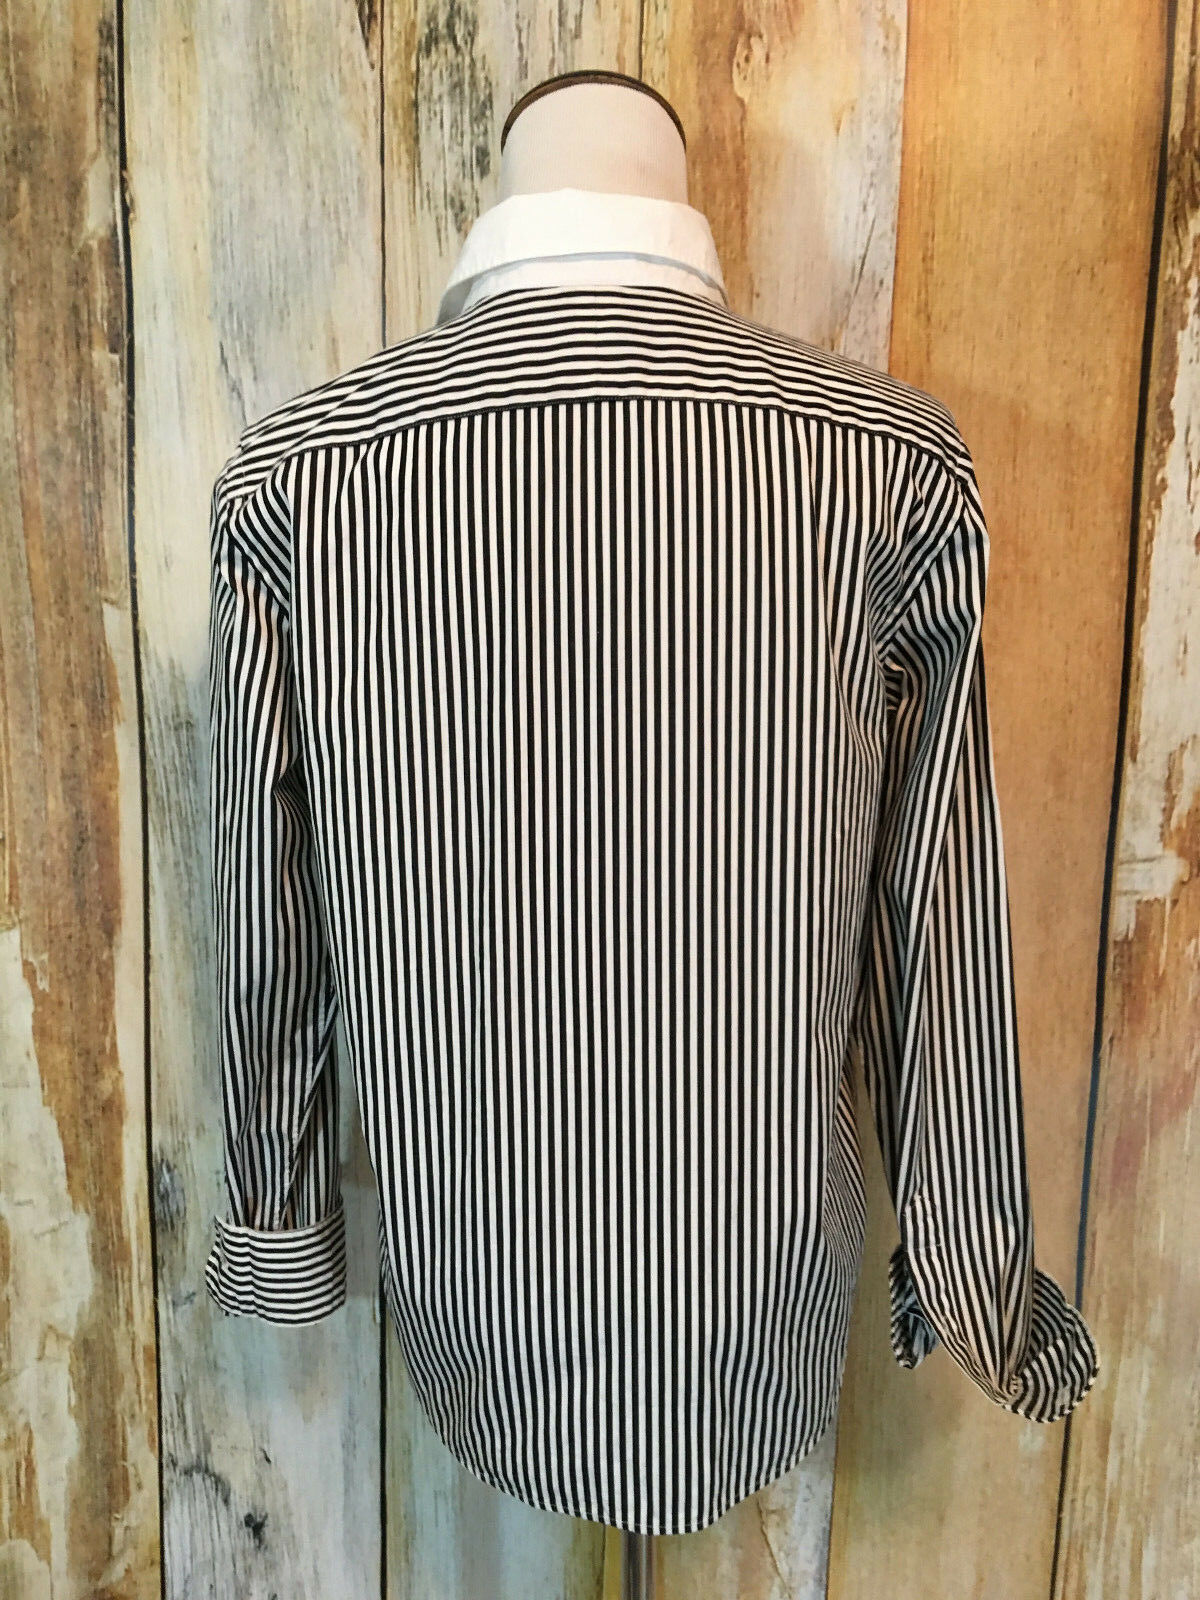 Lauren Ralph Lauren Button Down Shirt Stripe Black White Career Cotton sz S EUC!